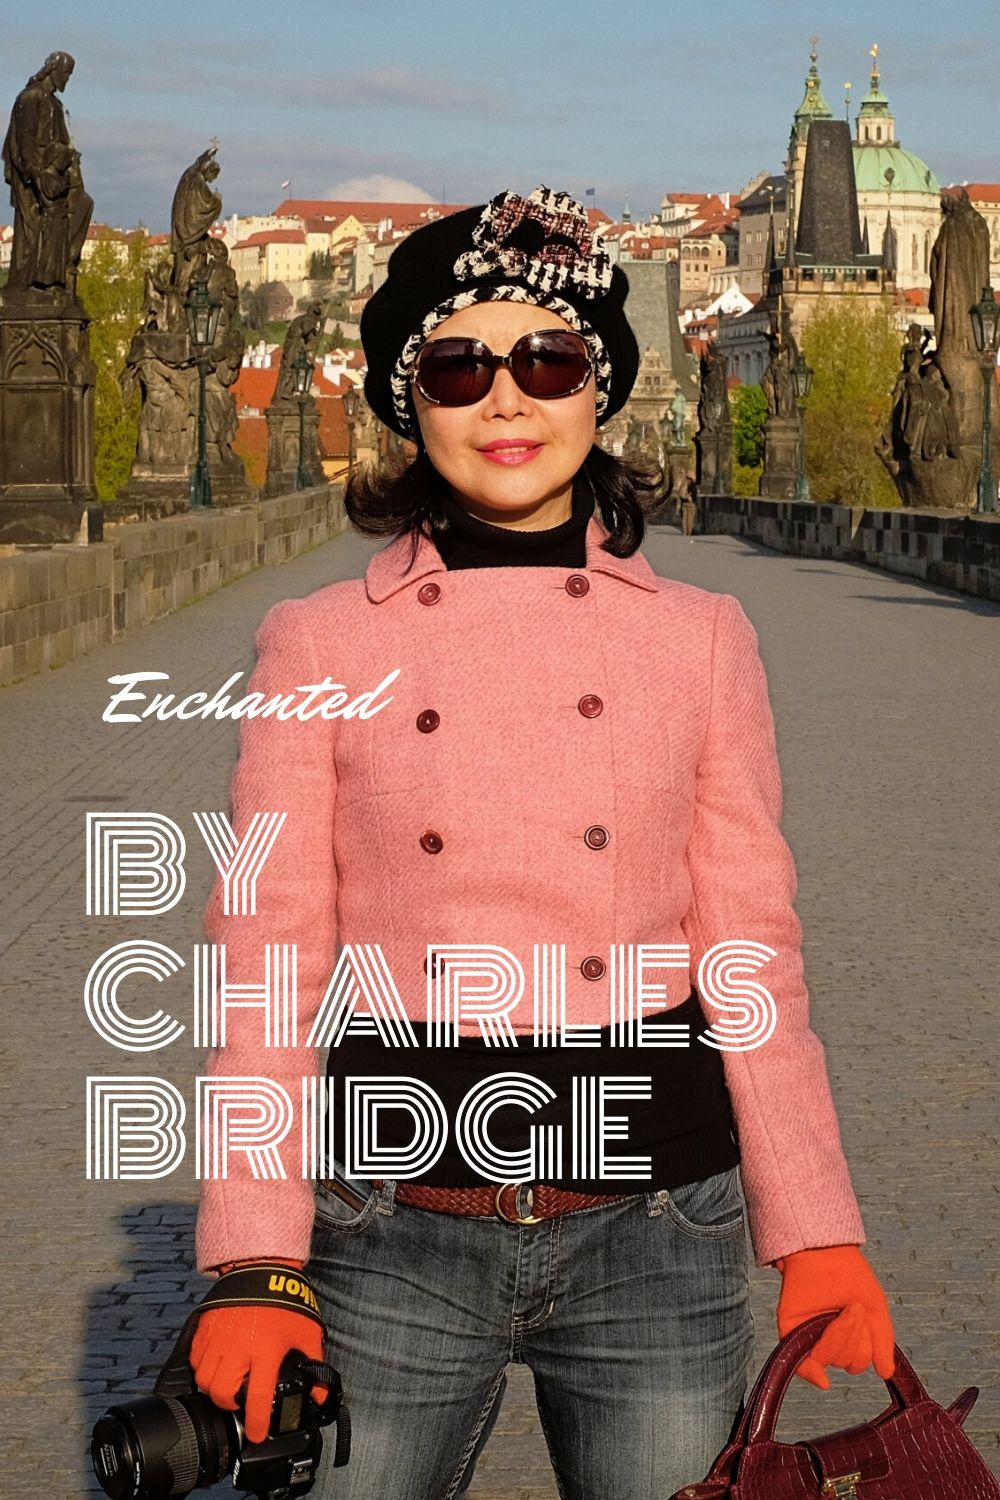 Enchanted by Charles Bridge. Portrait photoshoot on location at Charles Bridge in Prague by fashion photographer Kent Johnson for White Caviar Life.